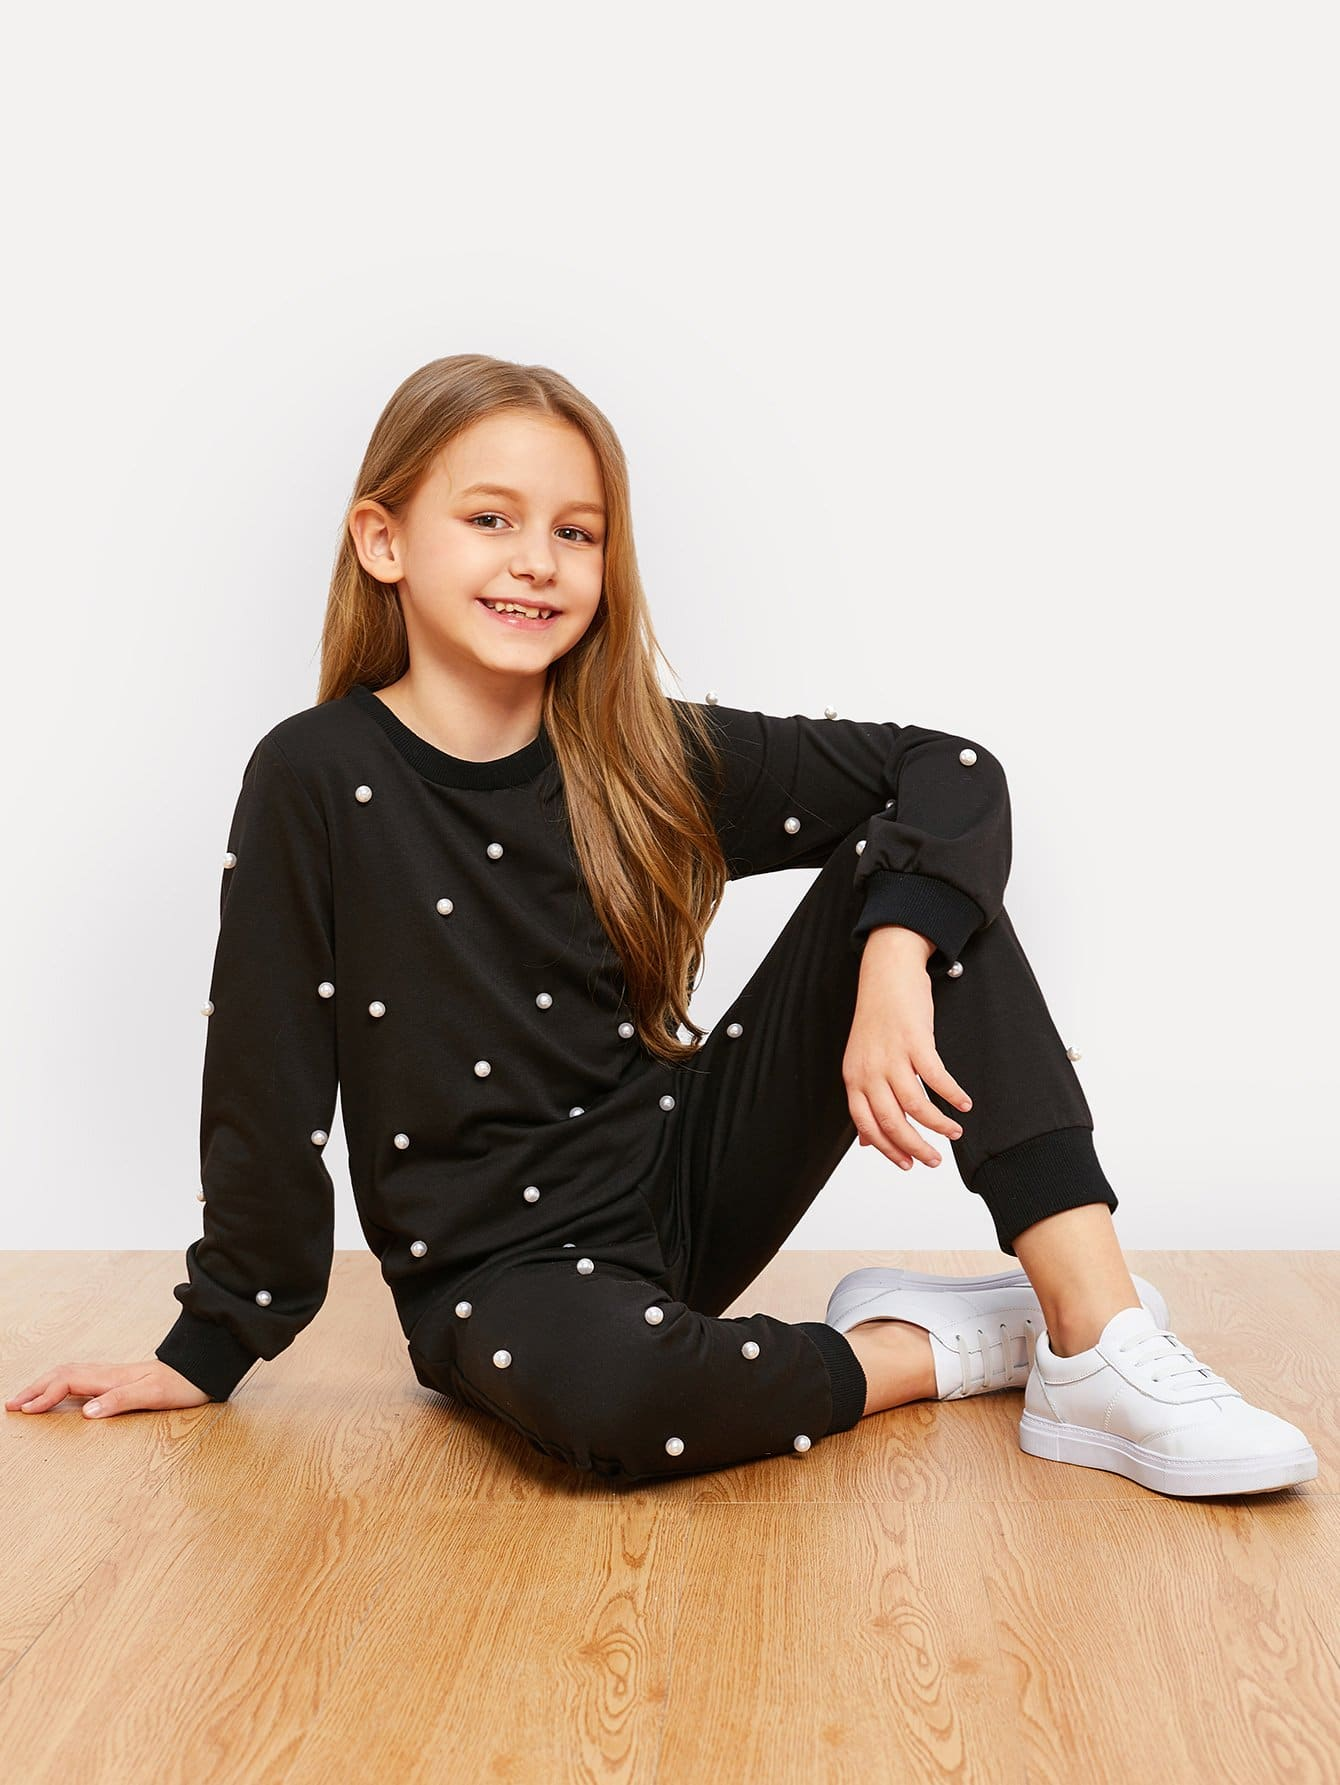 Girls Pearl Beaded Top & Pants Set фигурка героя мультфильма oem 1piece 12 30 6 baymax baymax 6 4902